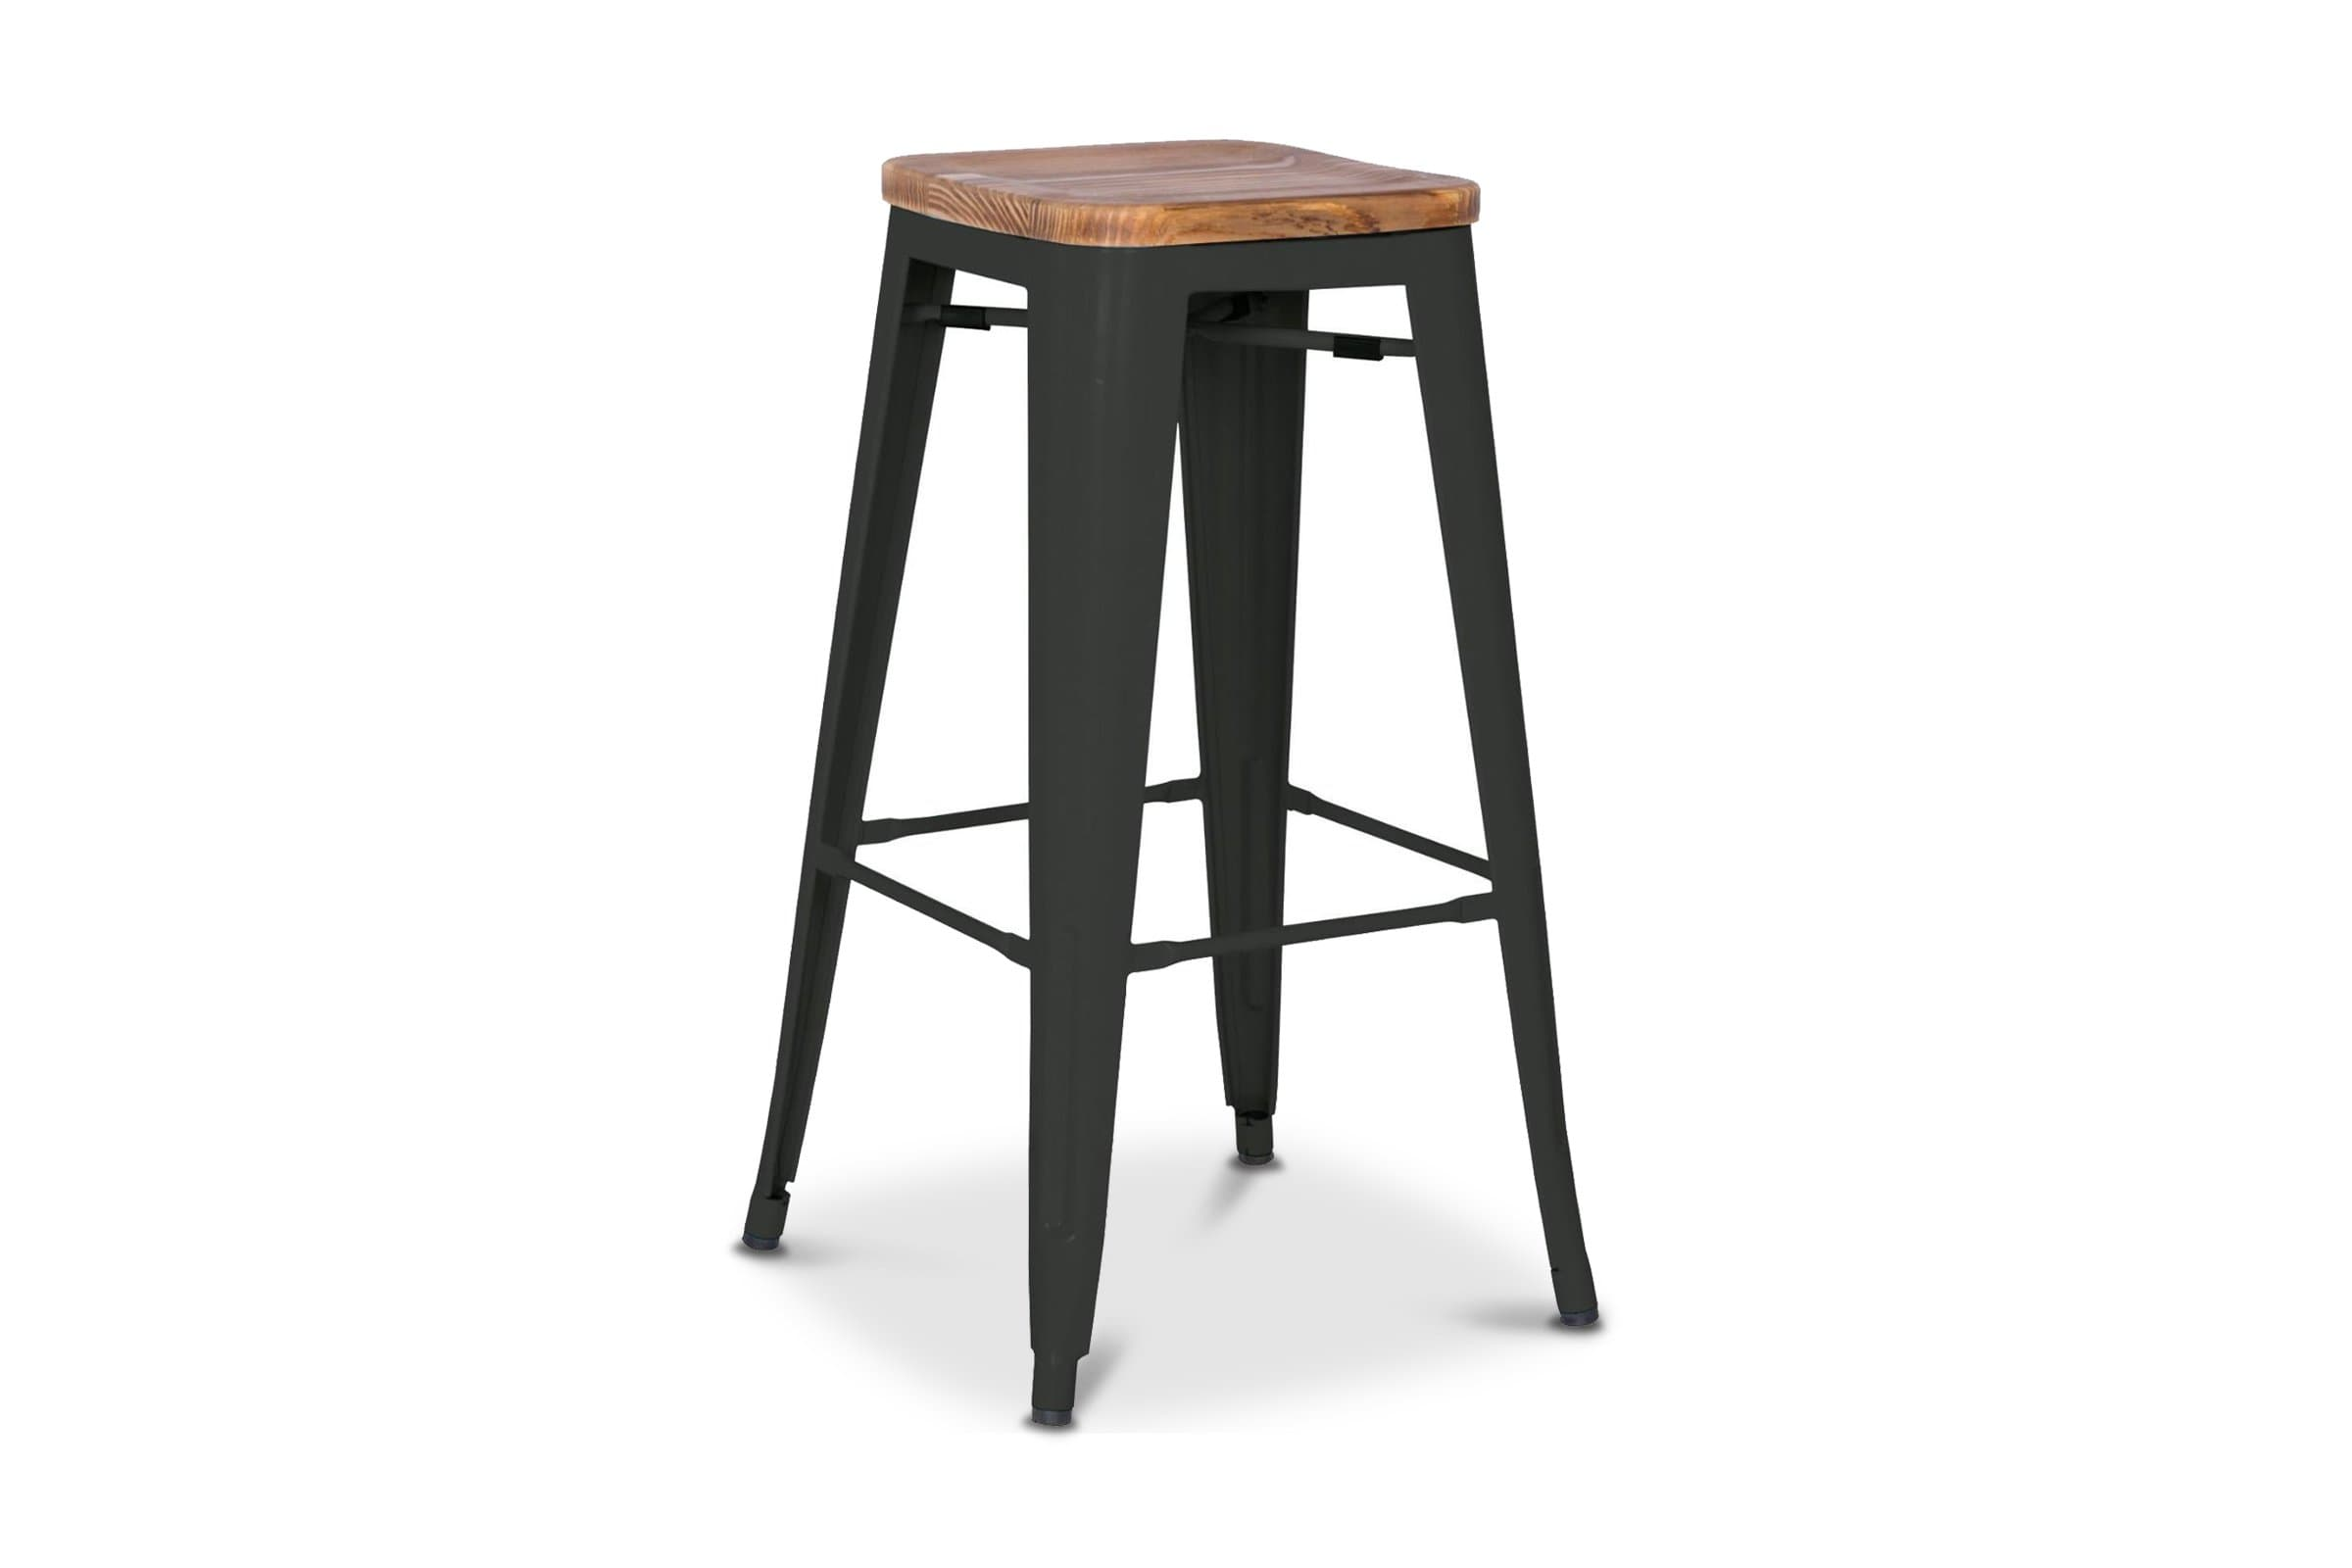 Terrific Grand Metal Counter Stool Black Set Of 4 Squirreltailoven Fun Painted Chair Ideas Images Squirreltailovenorg